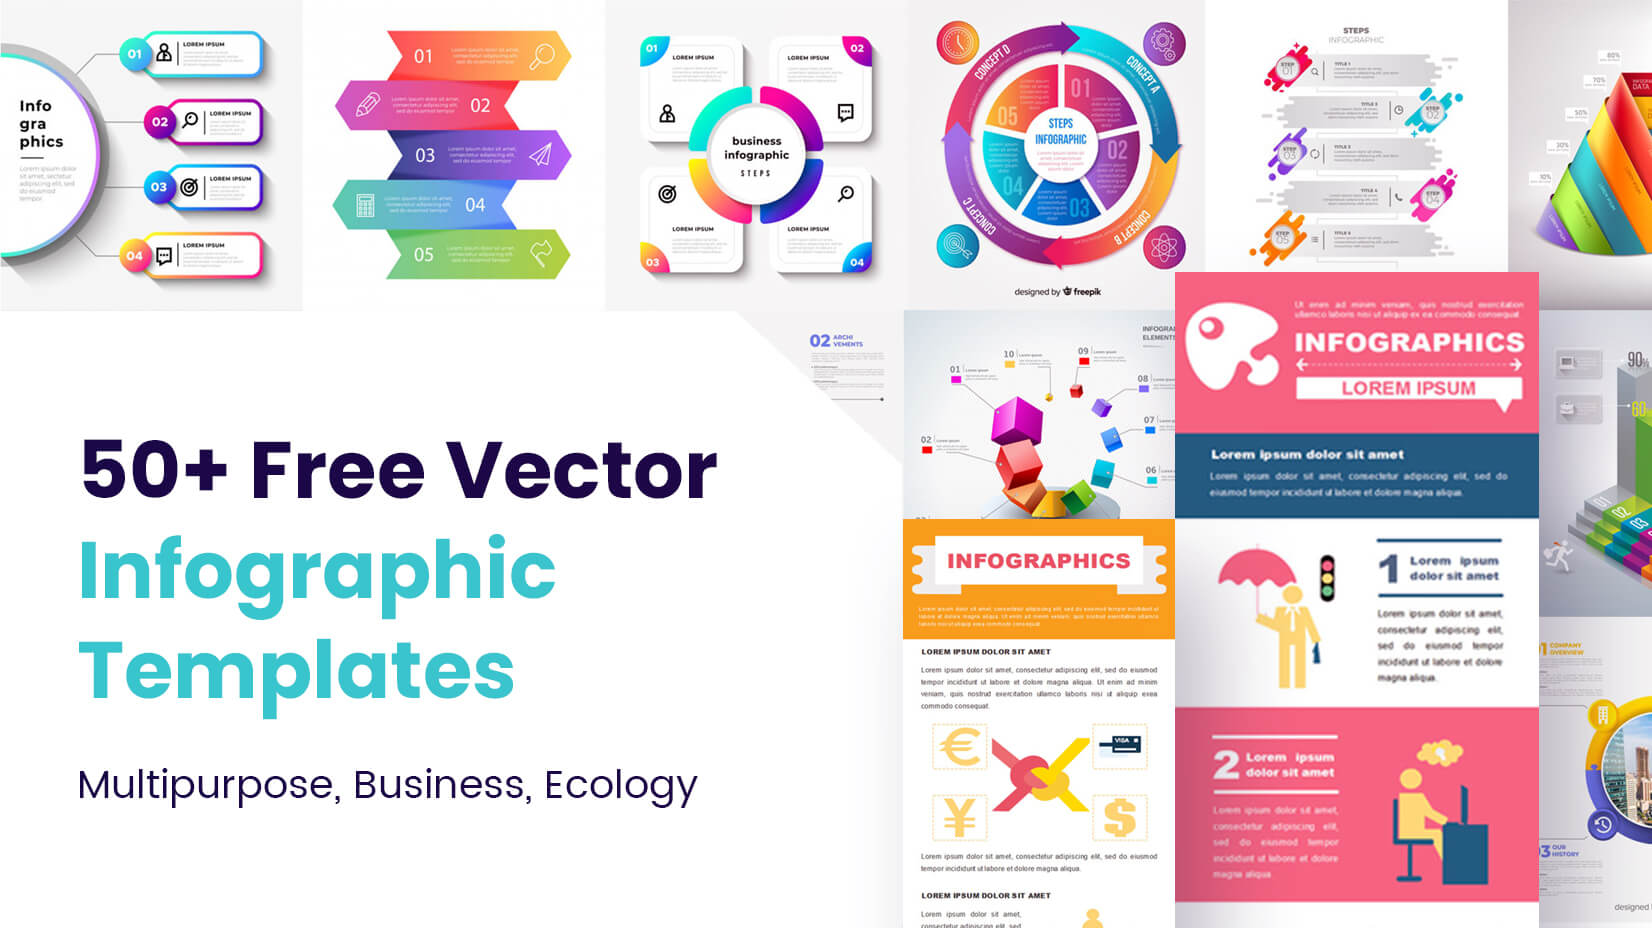 50 Free Vector Infographic Templates Multipurpose